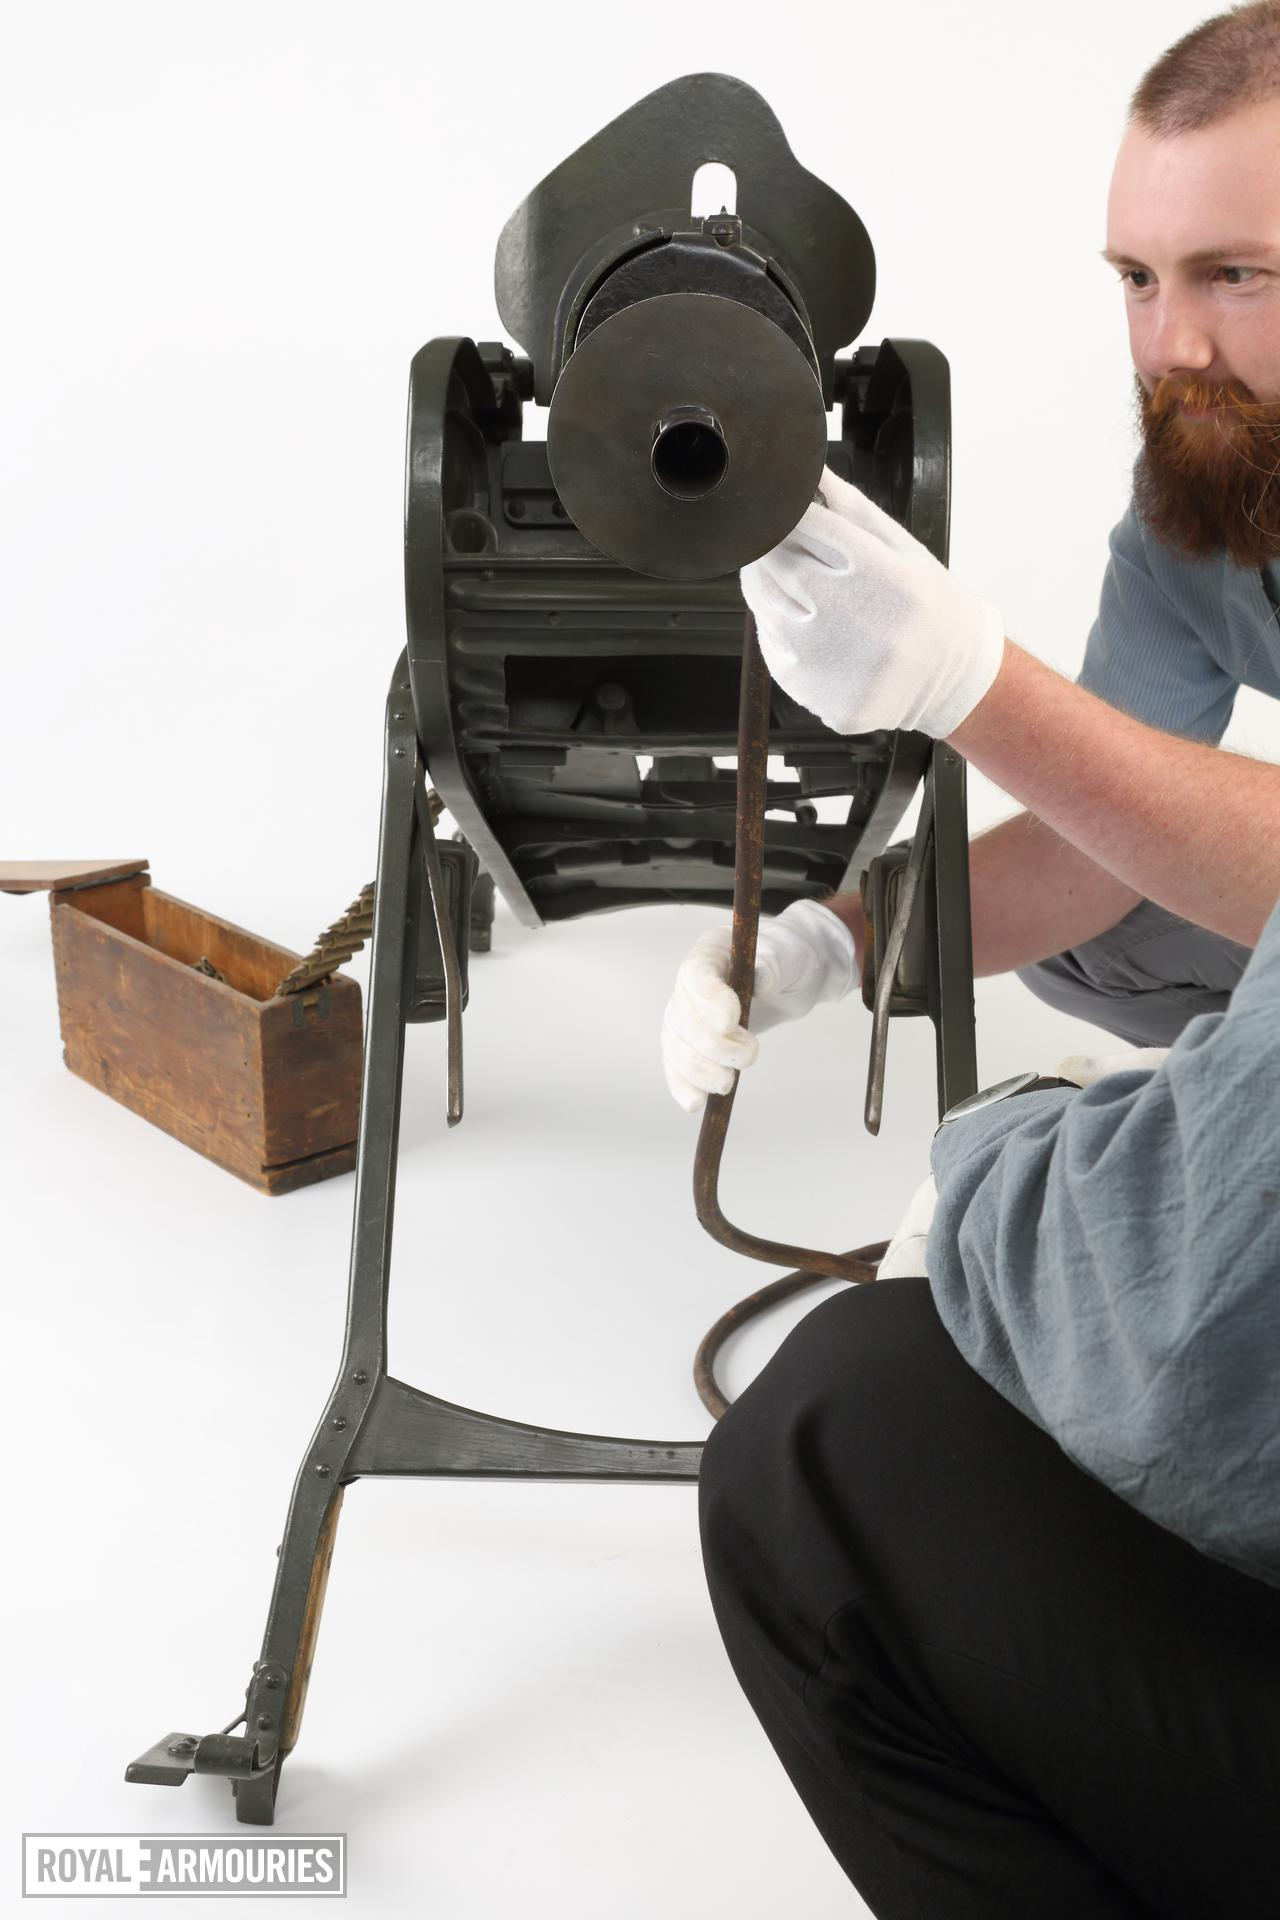 Library assistant, James Avison, helps with photography of a Maxim MG 08 centrefire automatic belt-fed machine gun (XII.11212) with sled type mount (PR.74), Germany, early 20th century at the Royal Armouries Museum, Leeds, United Kingdom, July, 2014.